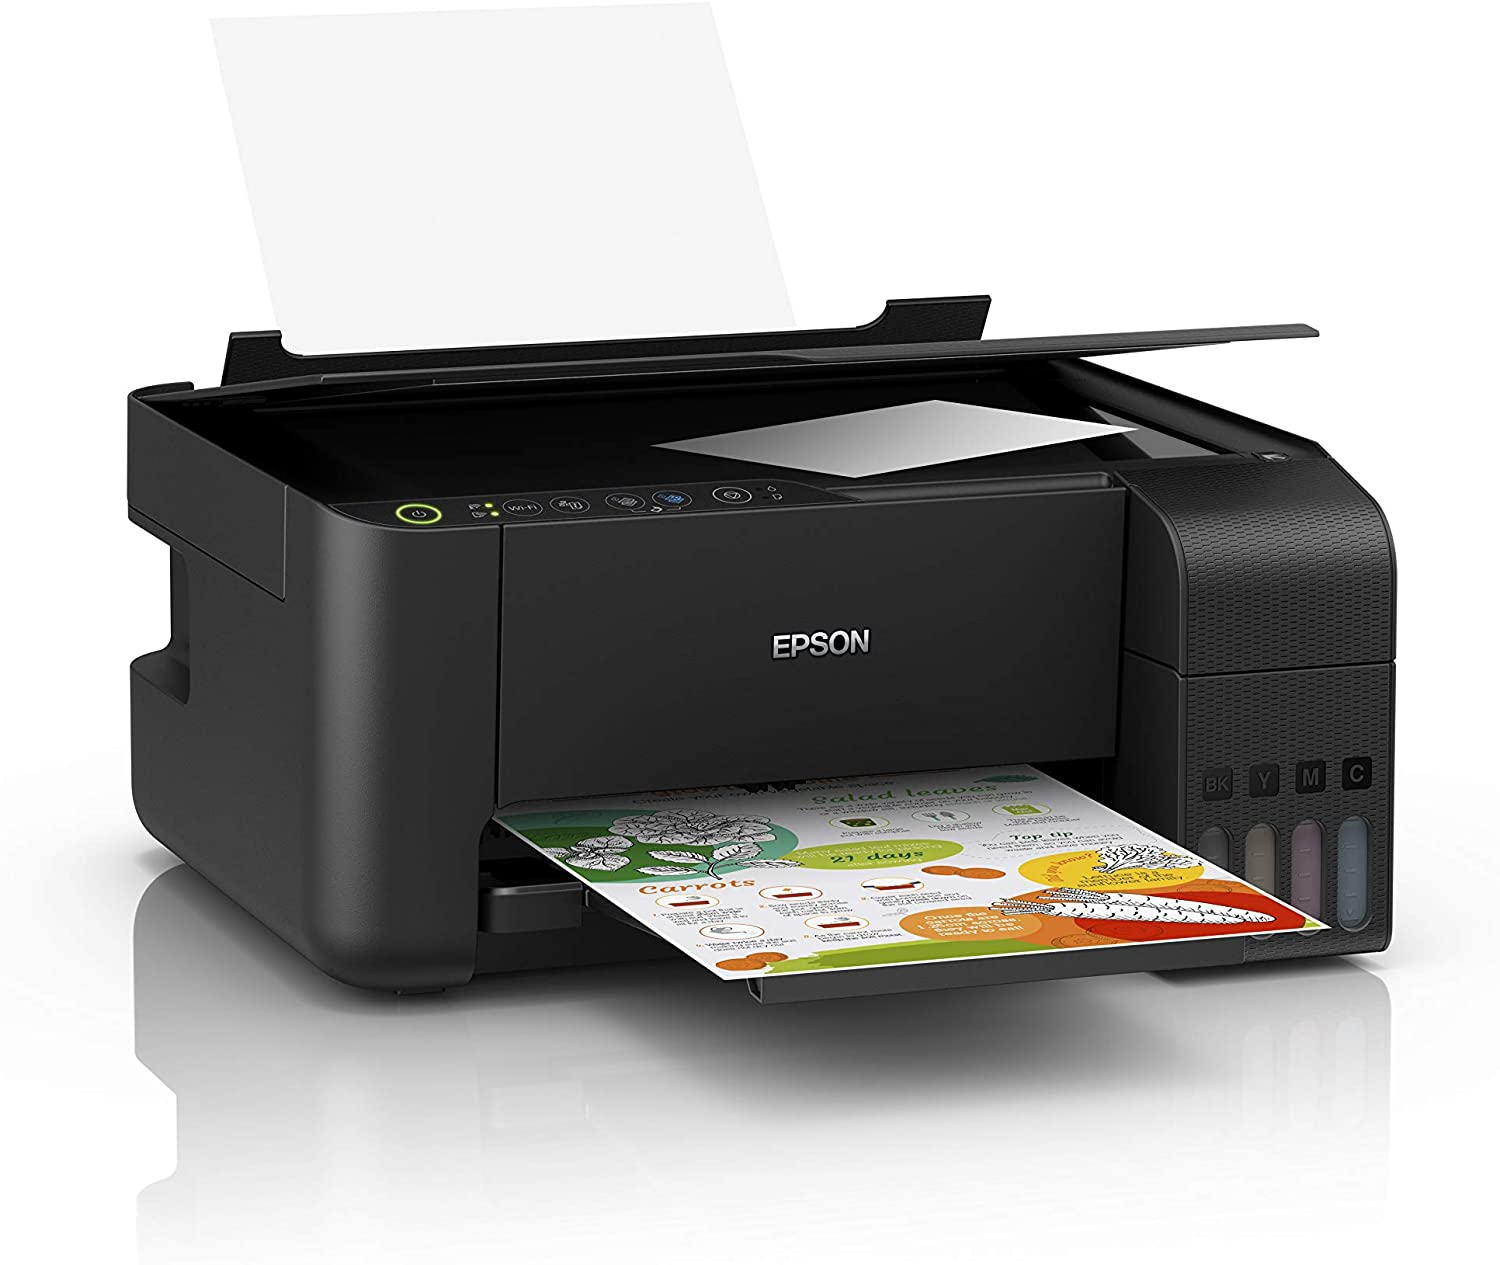 Epson EcoTank ET-2710 Print Scan Copy Wi-Fi, Cartridge Free Ink Tank Printer uk reviews